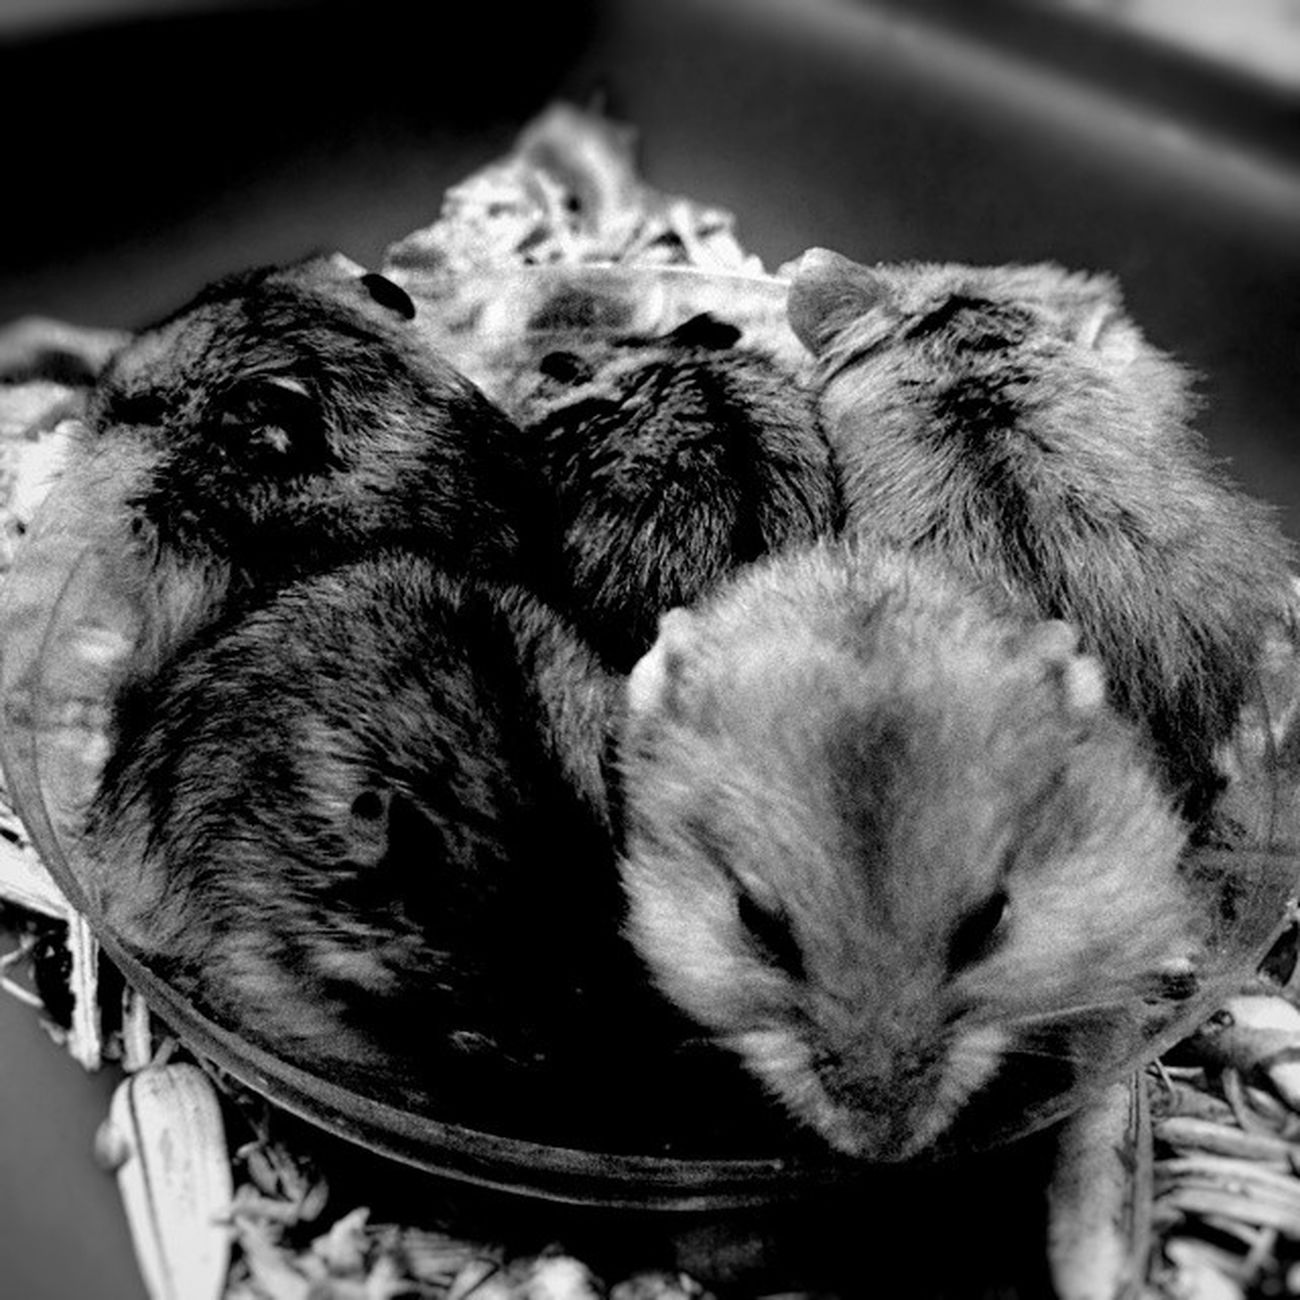 Five in one. Morning Morningactivity POTD Thursday breakfast seeds nuts hamster hamsters babyhamsters babyanimals pet fluffy blackandwhite blackandwhitephotography colorless world_bnw bw_awards insta_bw bnw_planet ae_bnw bnw bnw_society bwstyles_gf bnw_diamond bnw_life rsa_bnw